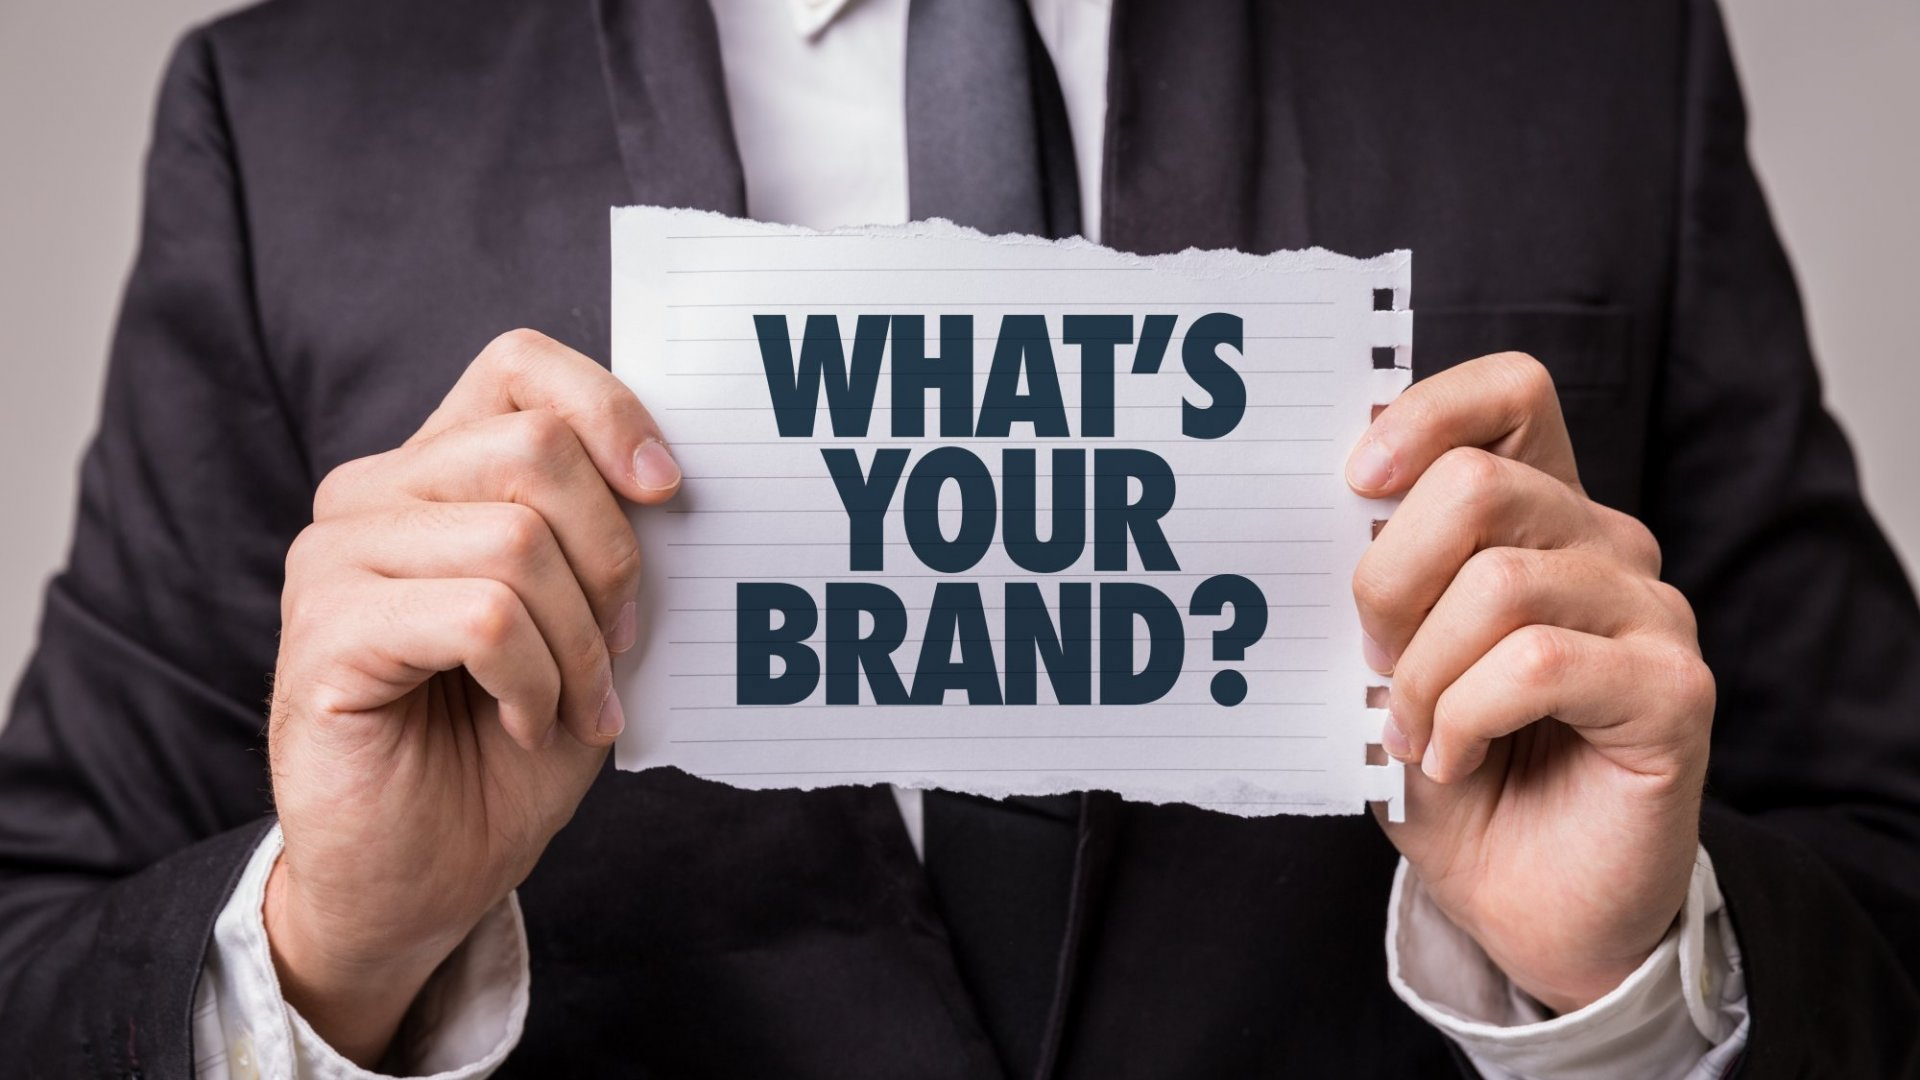 What exactly is your brand?